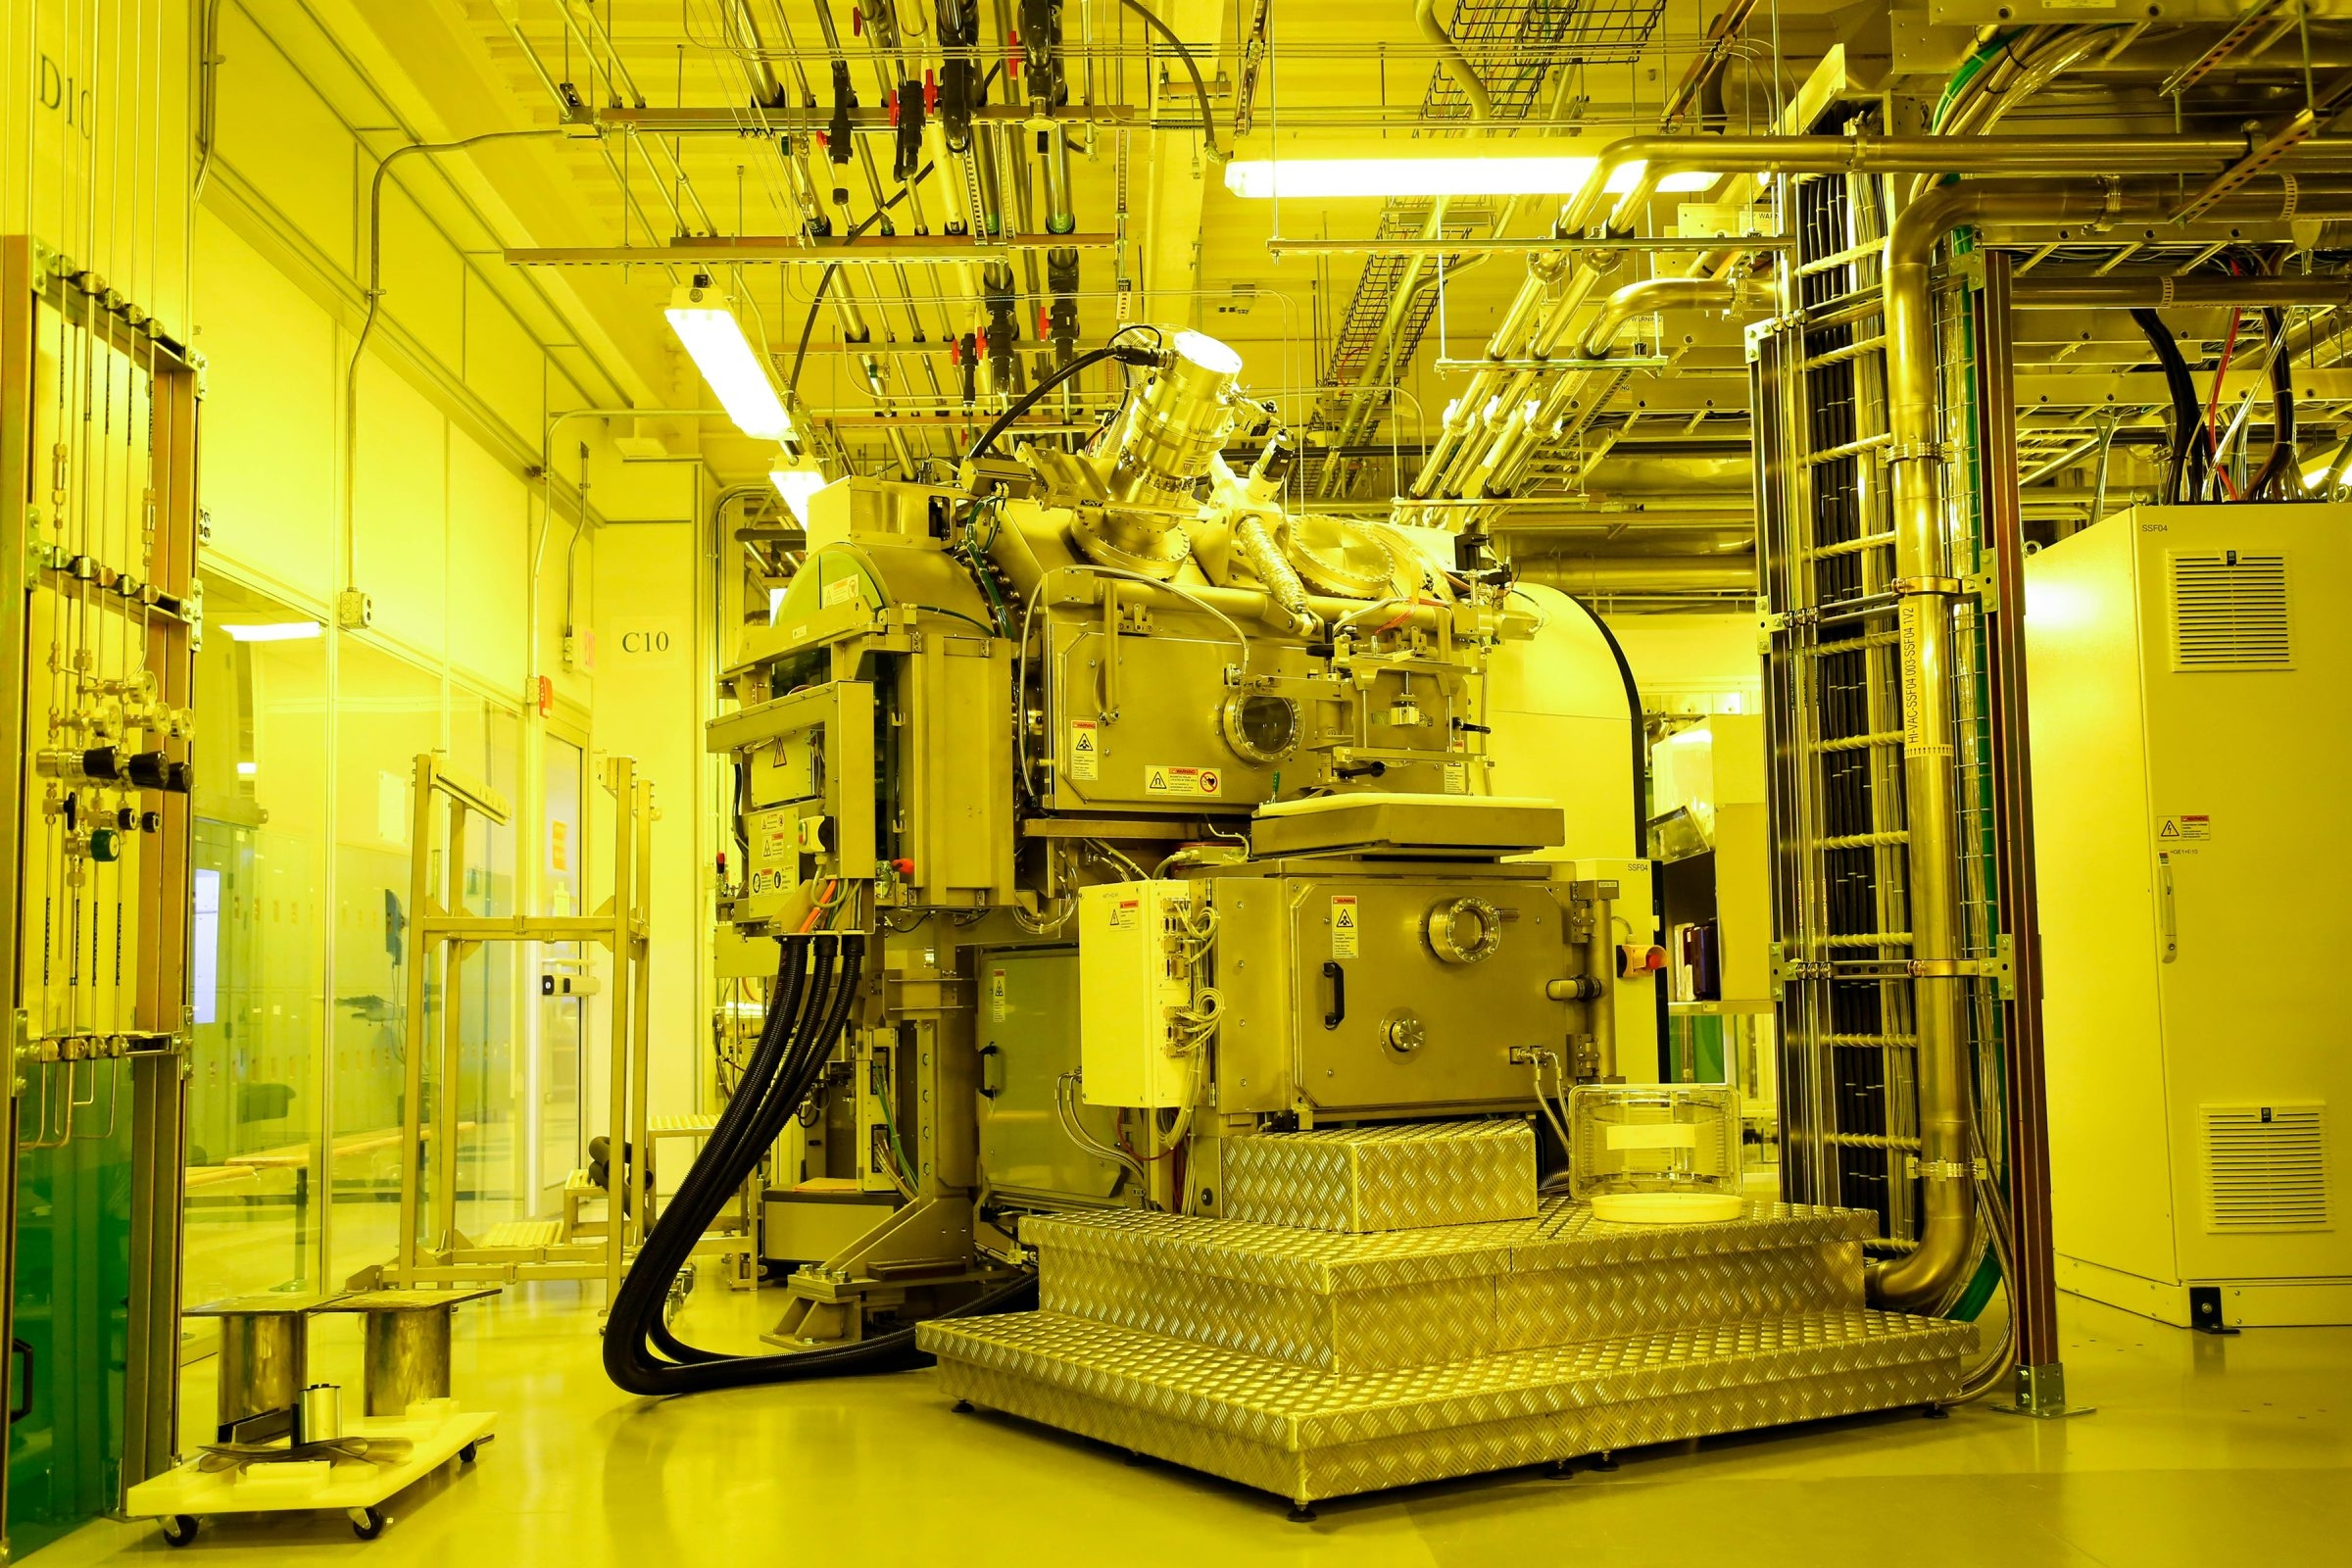 Singulus Timaris tool at SUNY Polytechnic Institute Colleges of Nanoscale Sciences and Engineering in Albany is similar to one that Photonica will use at Rochester hub, where Photonica and Avogy plan to employ hundreds.